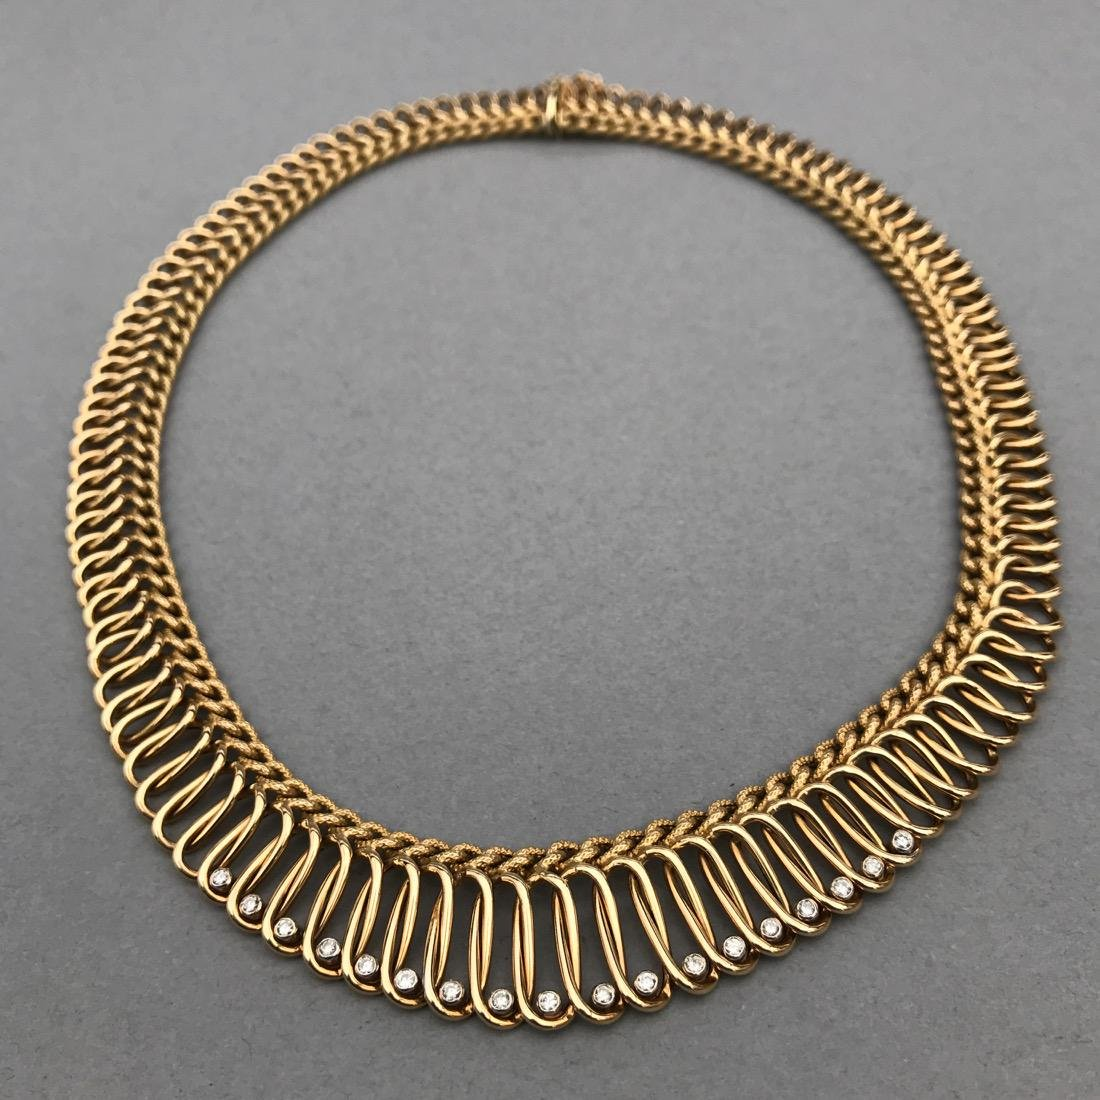 14K Gold Necklace with 18 Diamonds - 3